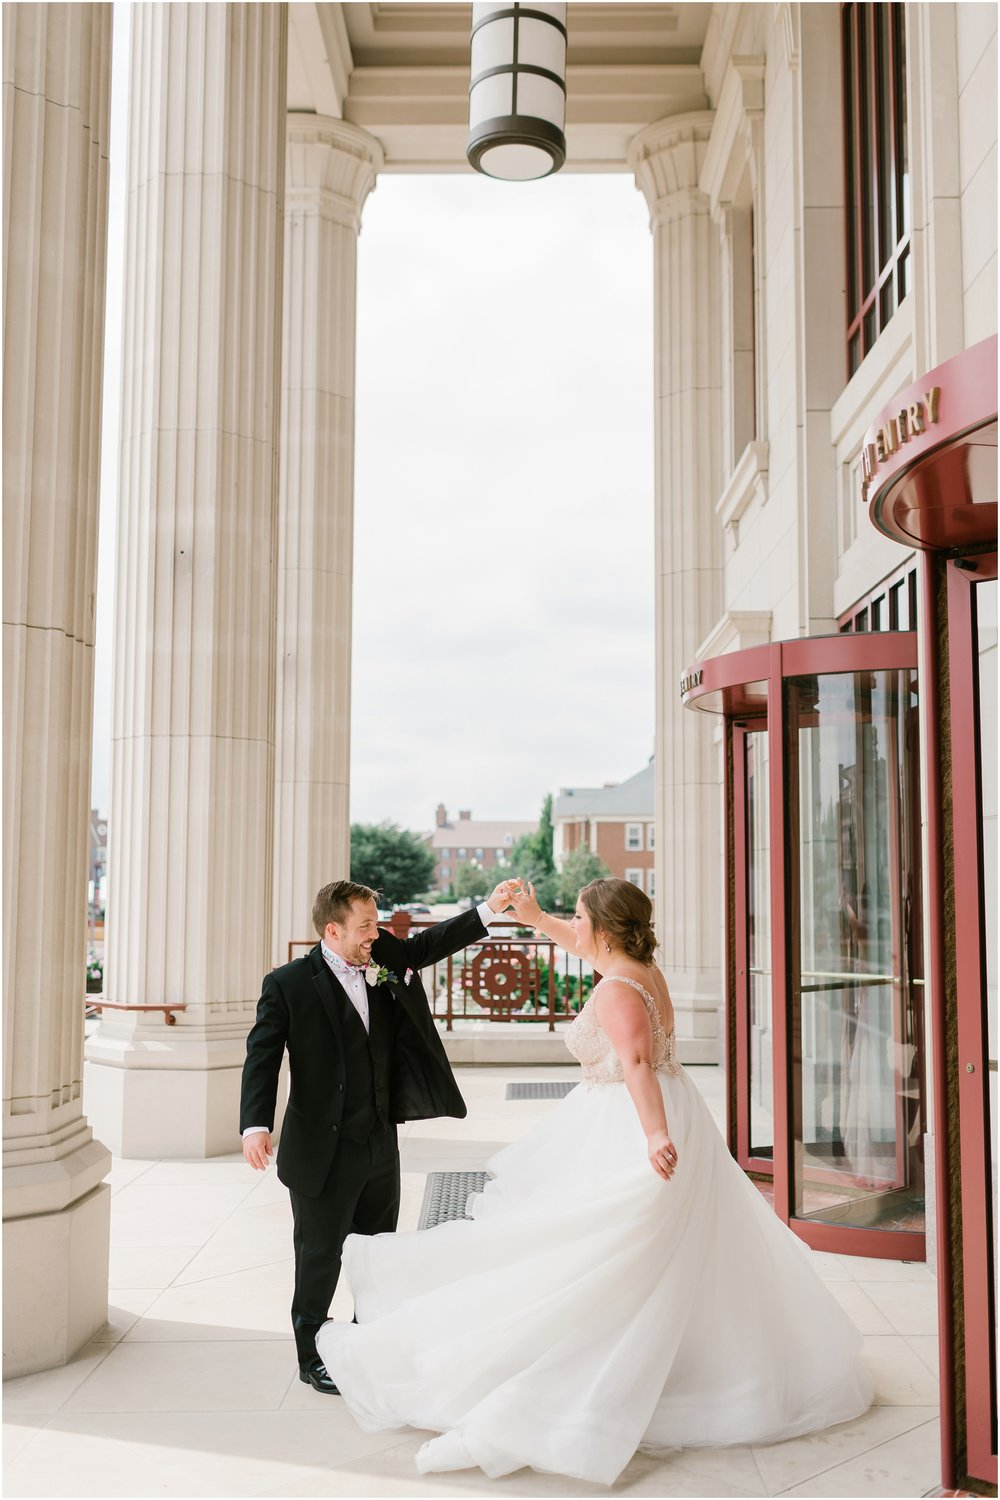 Rebecca_Shehorn_Photography_Indianapolis_Wedding_Photographer_8816.jpg